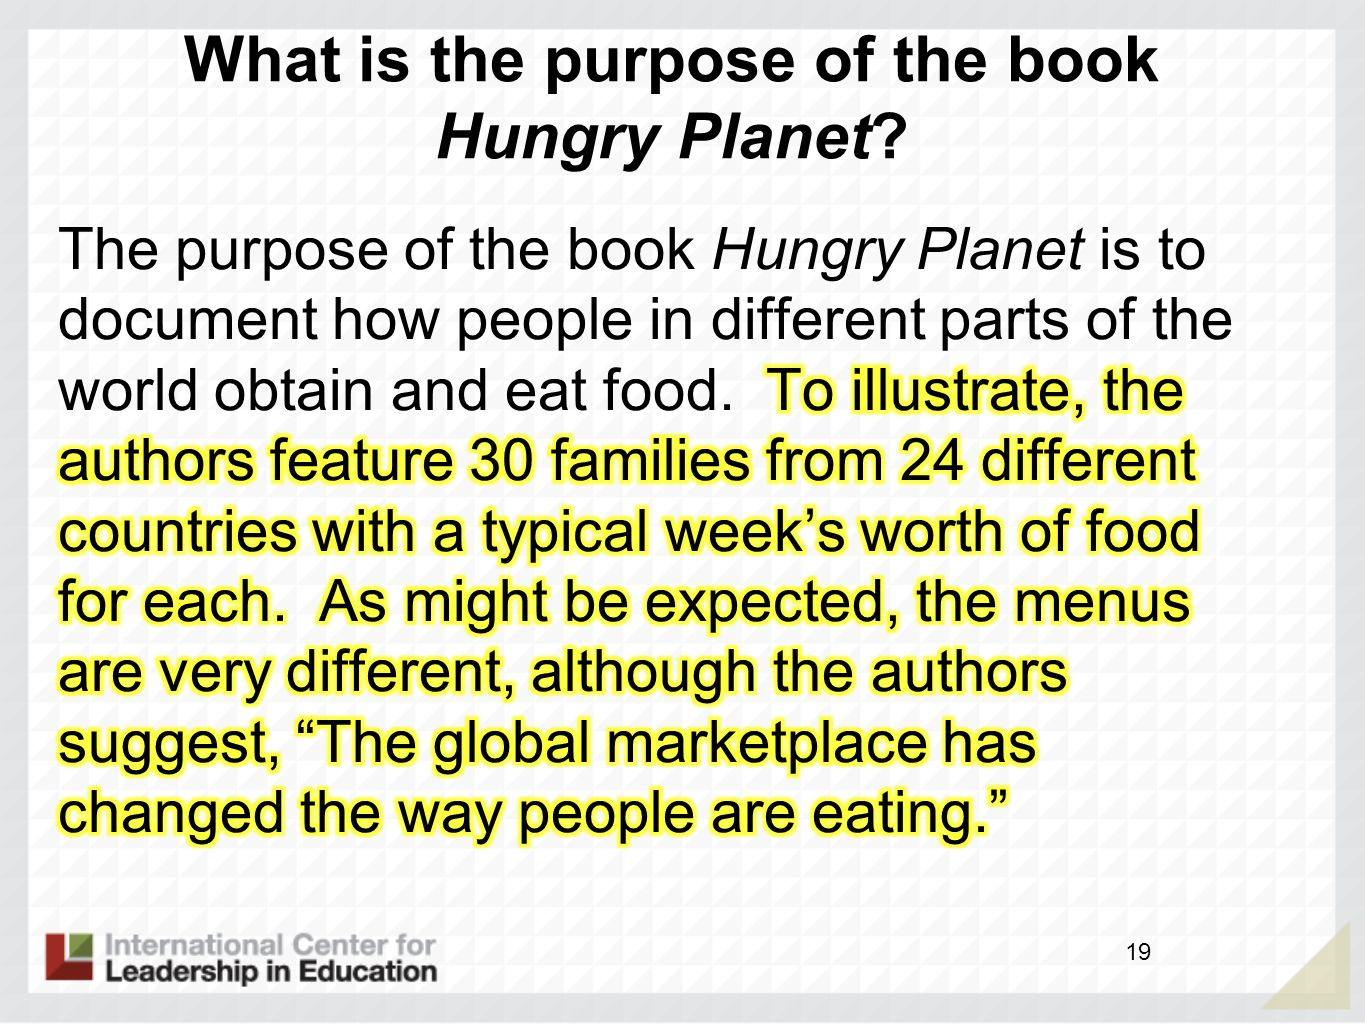 What is the purpose of the book Hungry Planet